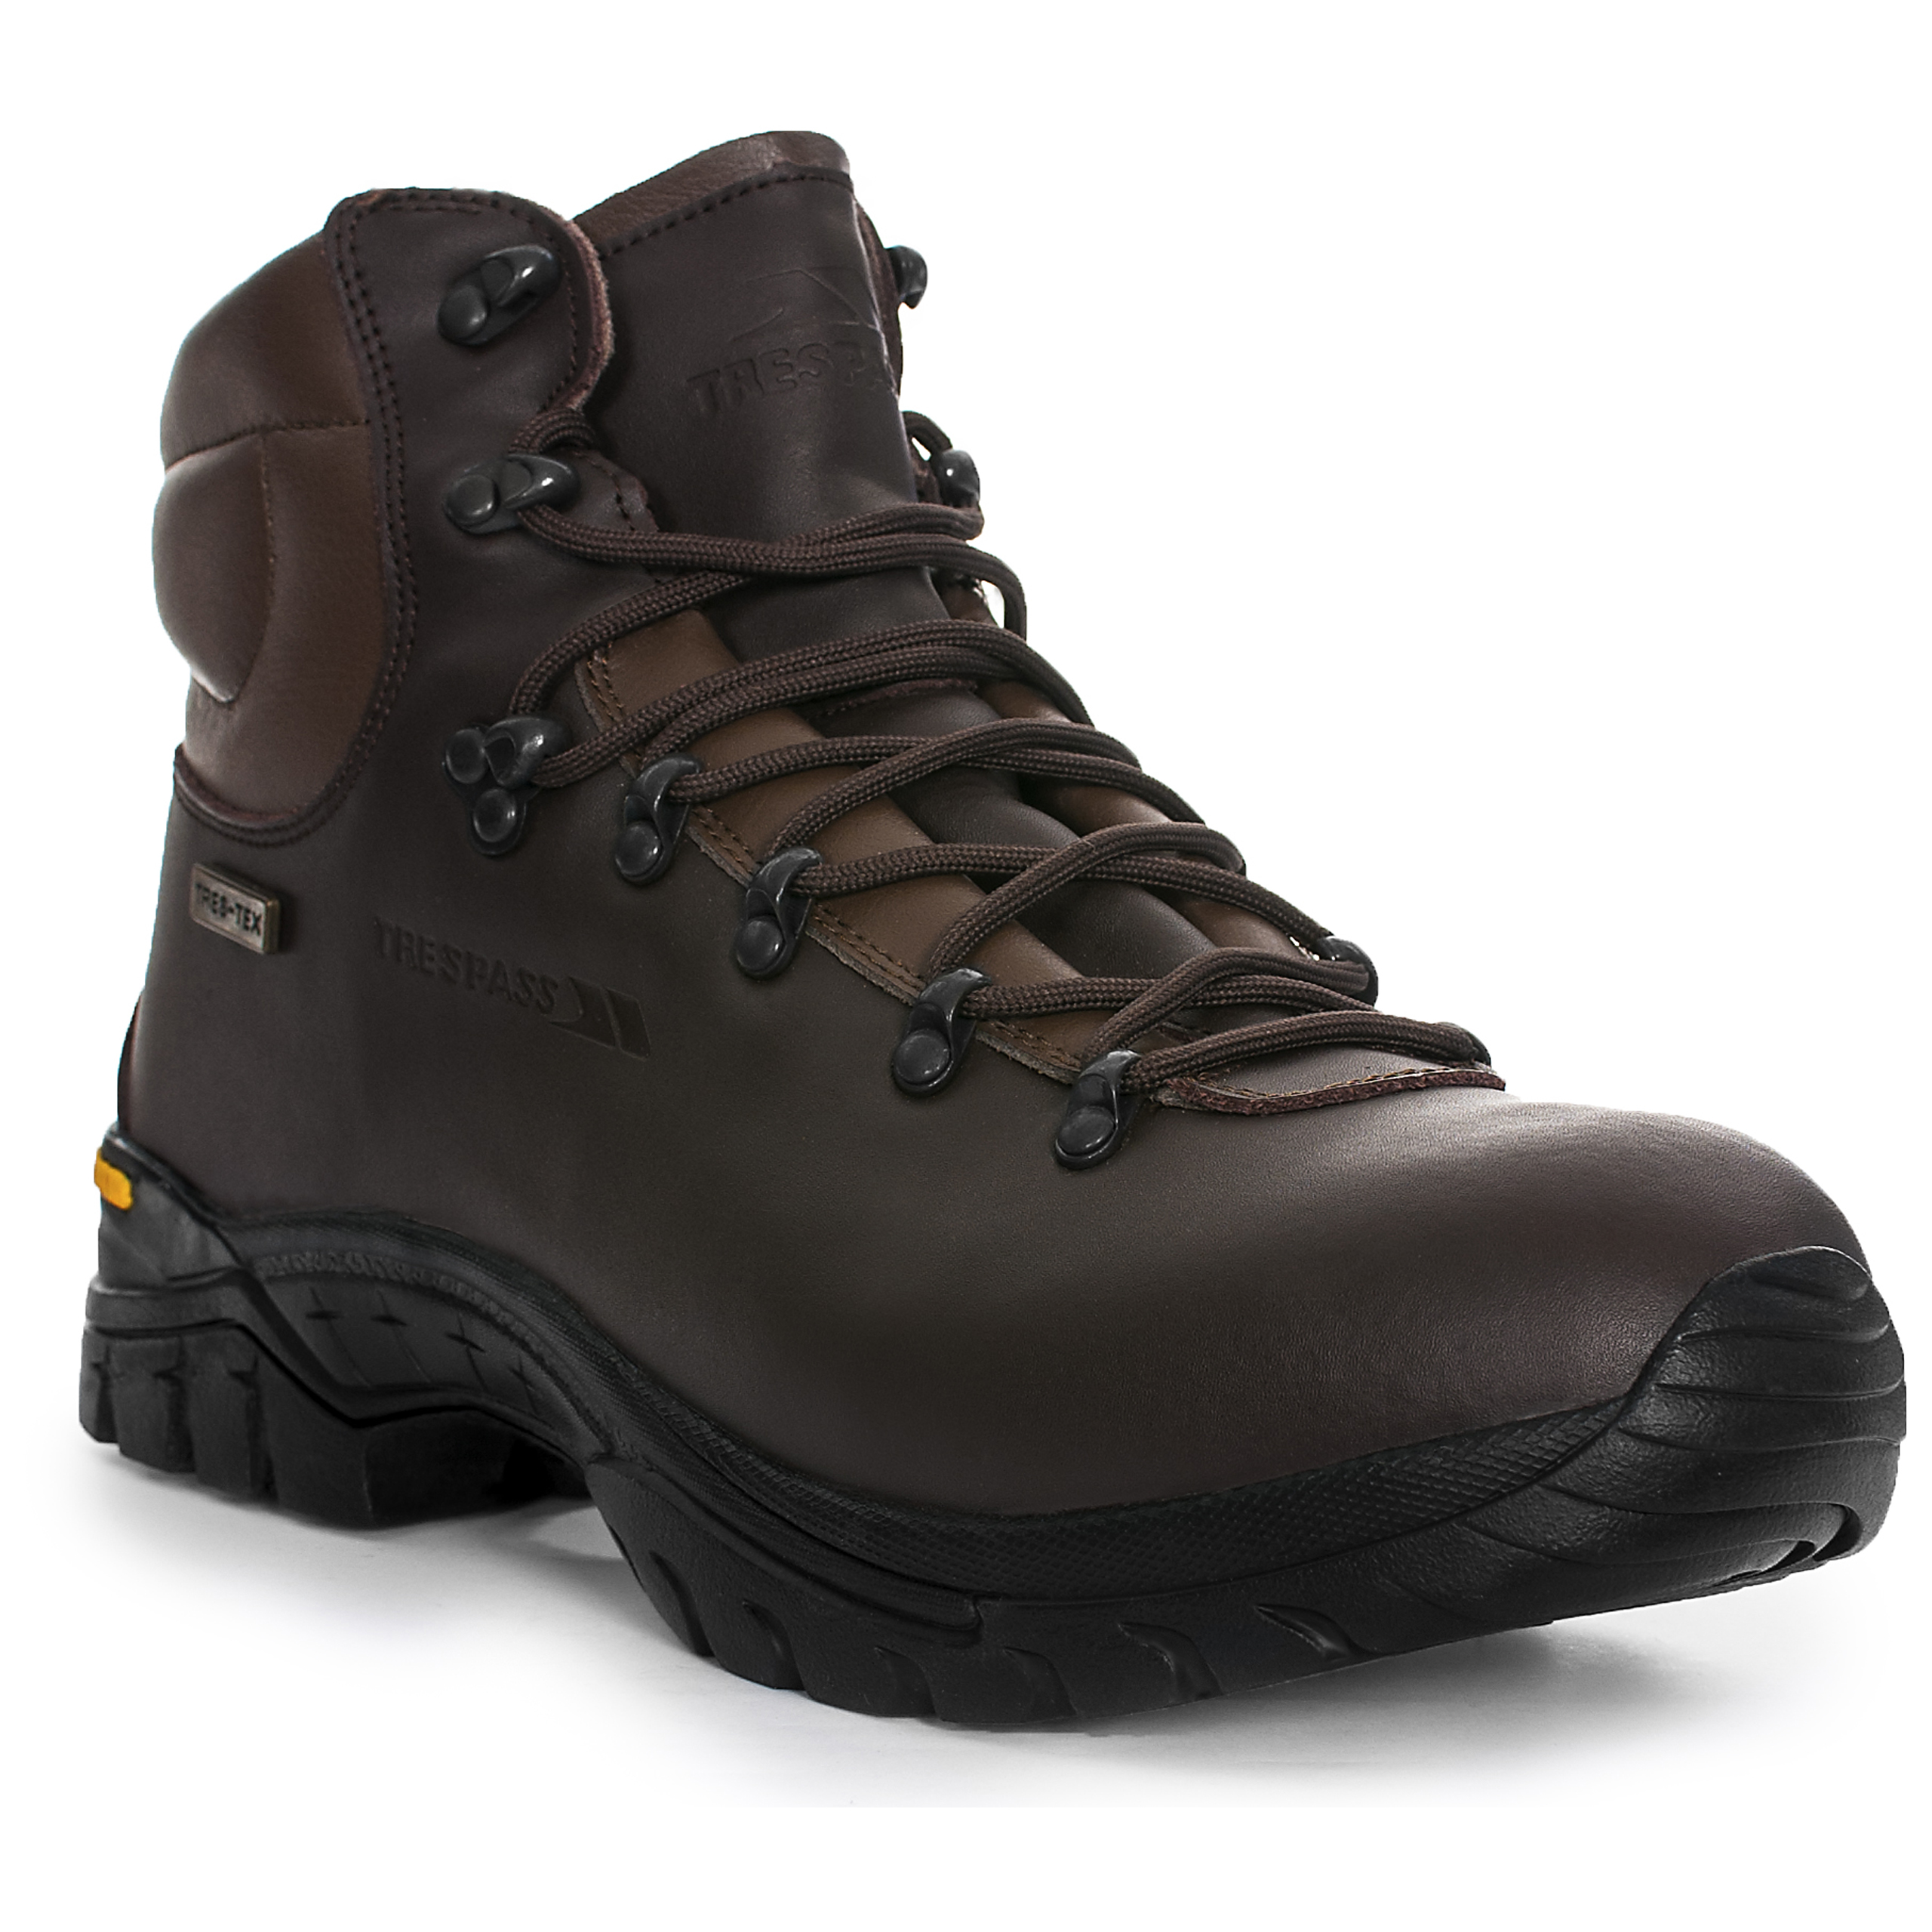 Trespass-Walker-Youths-Leather-Boots-Boys-Girls-Breathable-Walking-Hiking-Shoes thumbnail 5